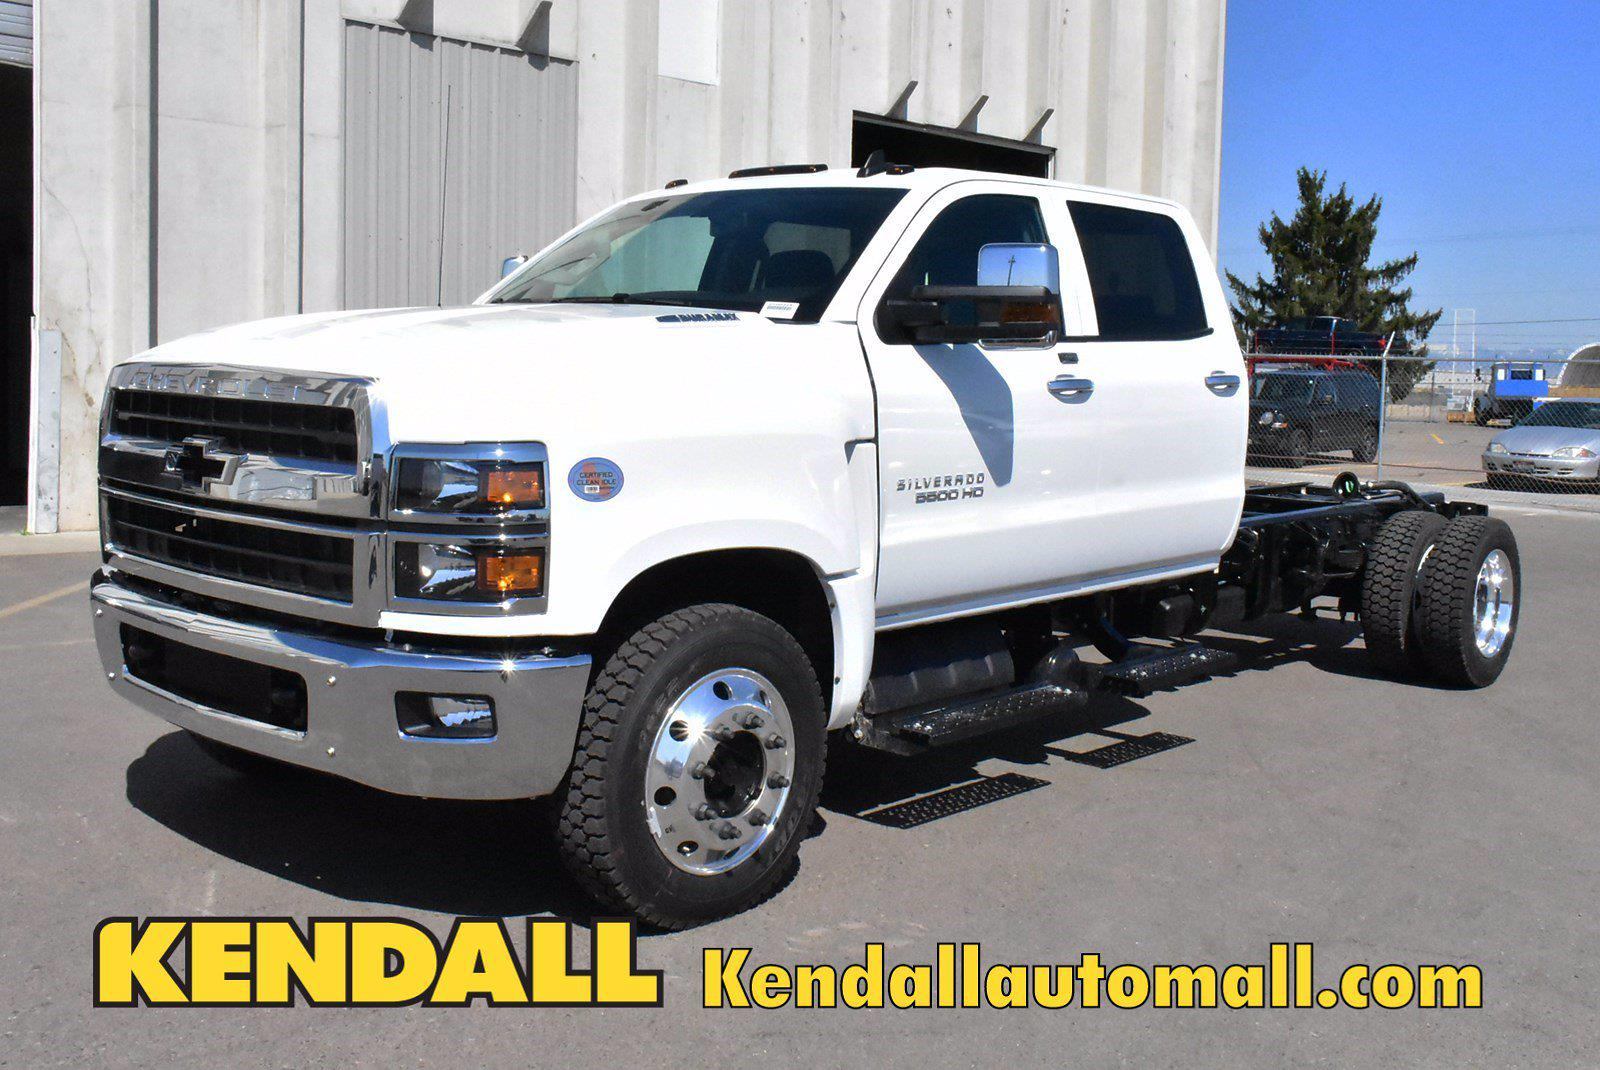 2020 Chevrolet Silverado 5500 DRW 4x2, Cab Chassis #D100225 - photo 1